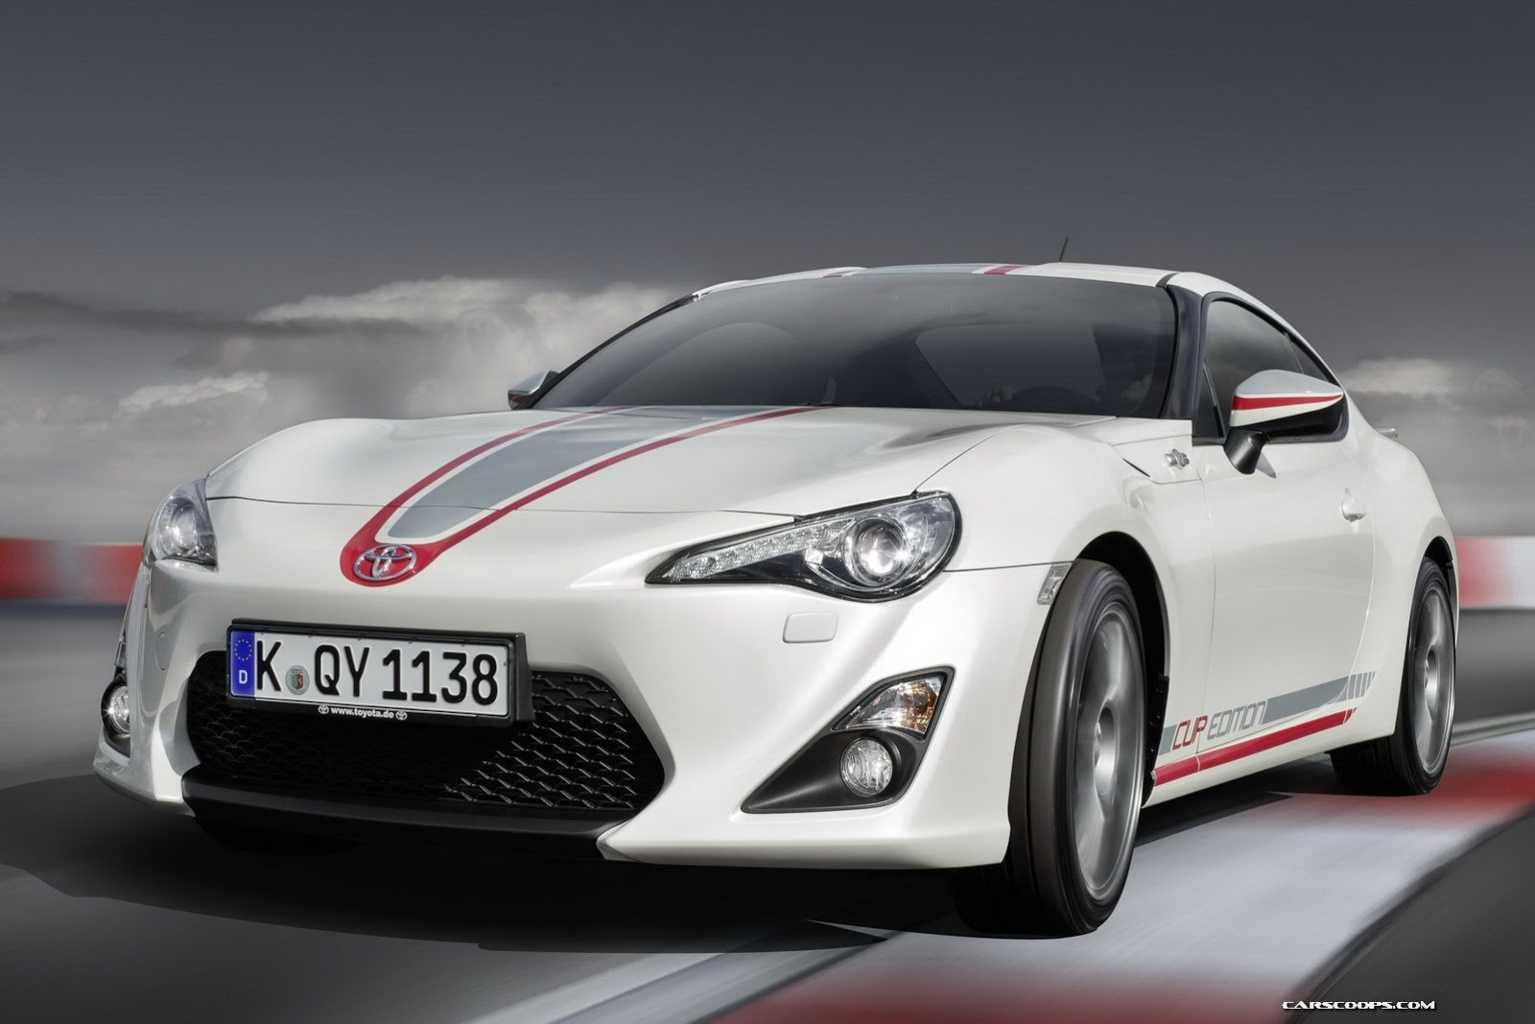 Delightful Coolest Car In The World 2013 | ... : 2013 Toyota GT86 Cup Edition Nice Look